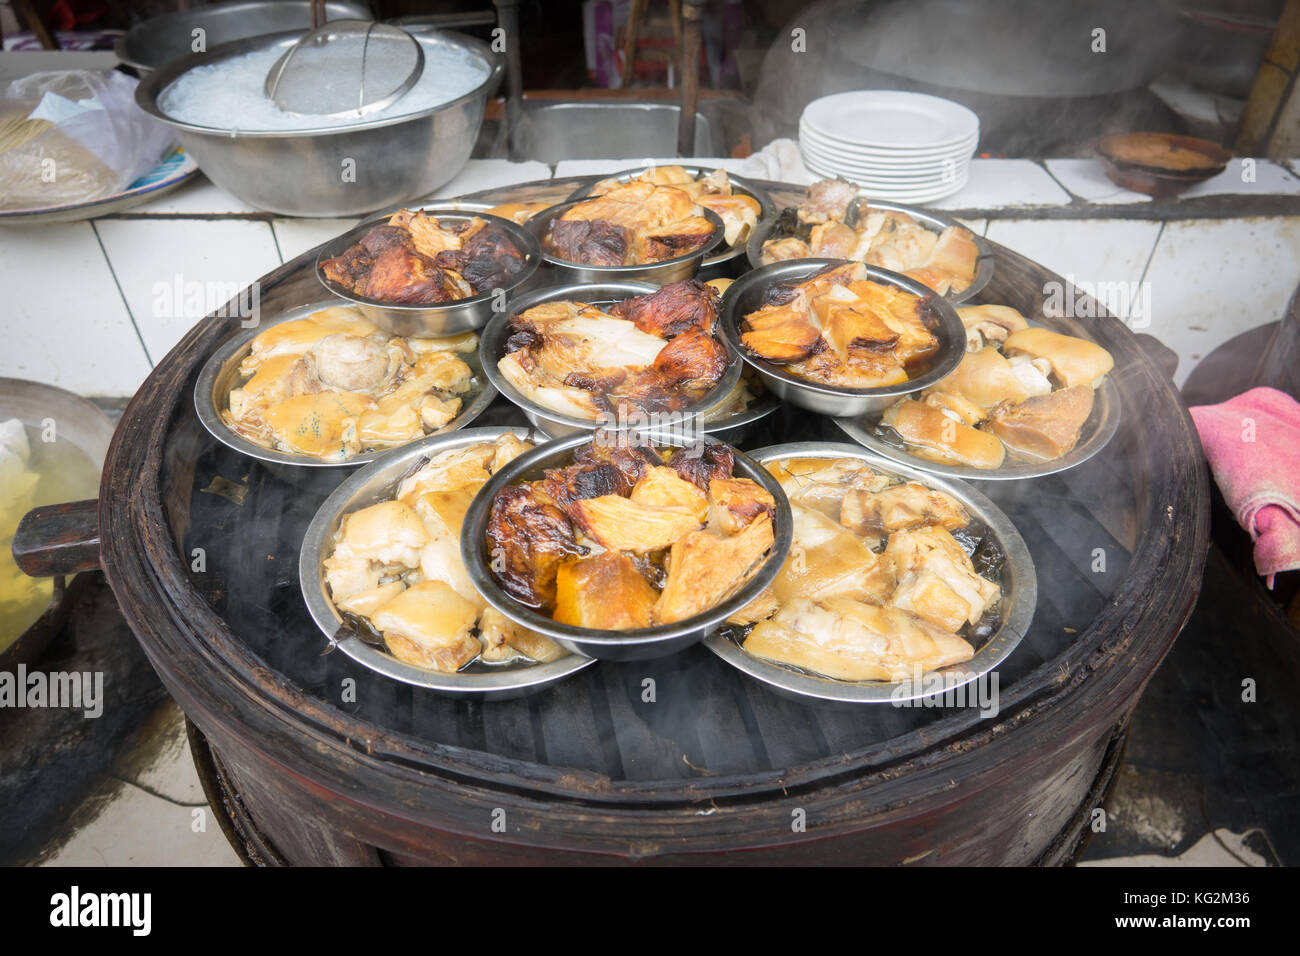 Sichuan street food in chaina Stock Photo